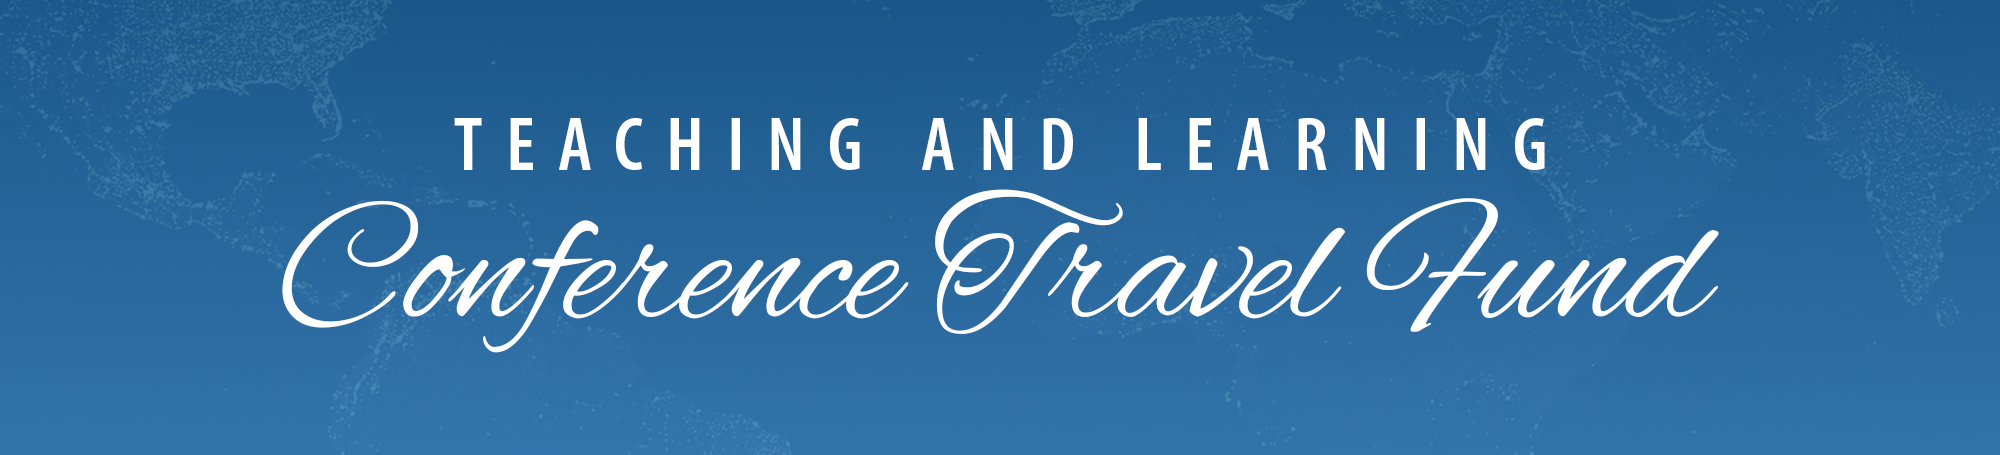 Teaching and Learning Conference Travel Fund